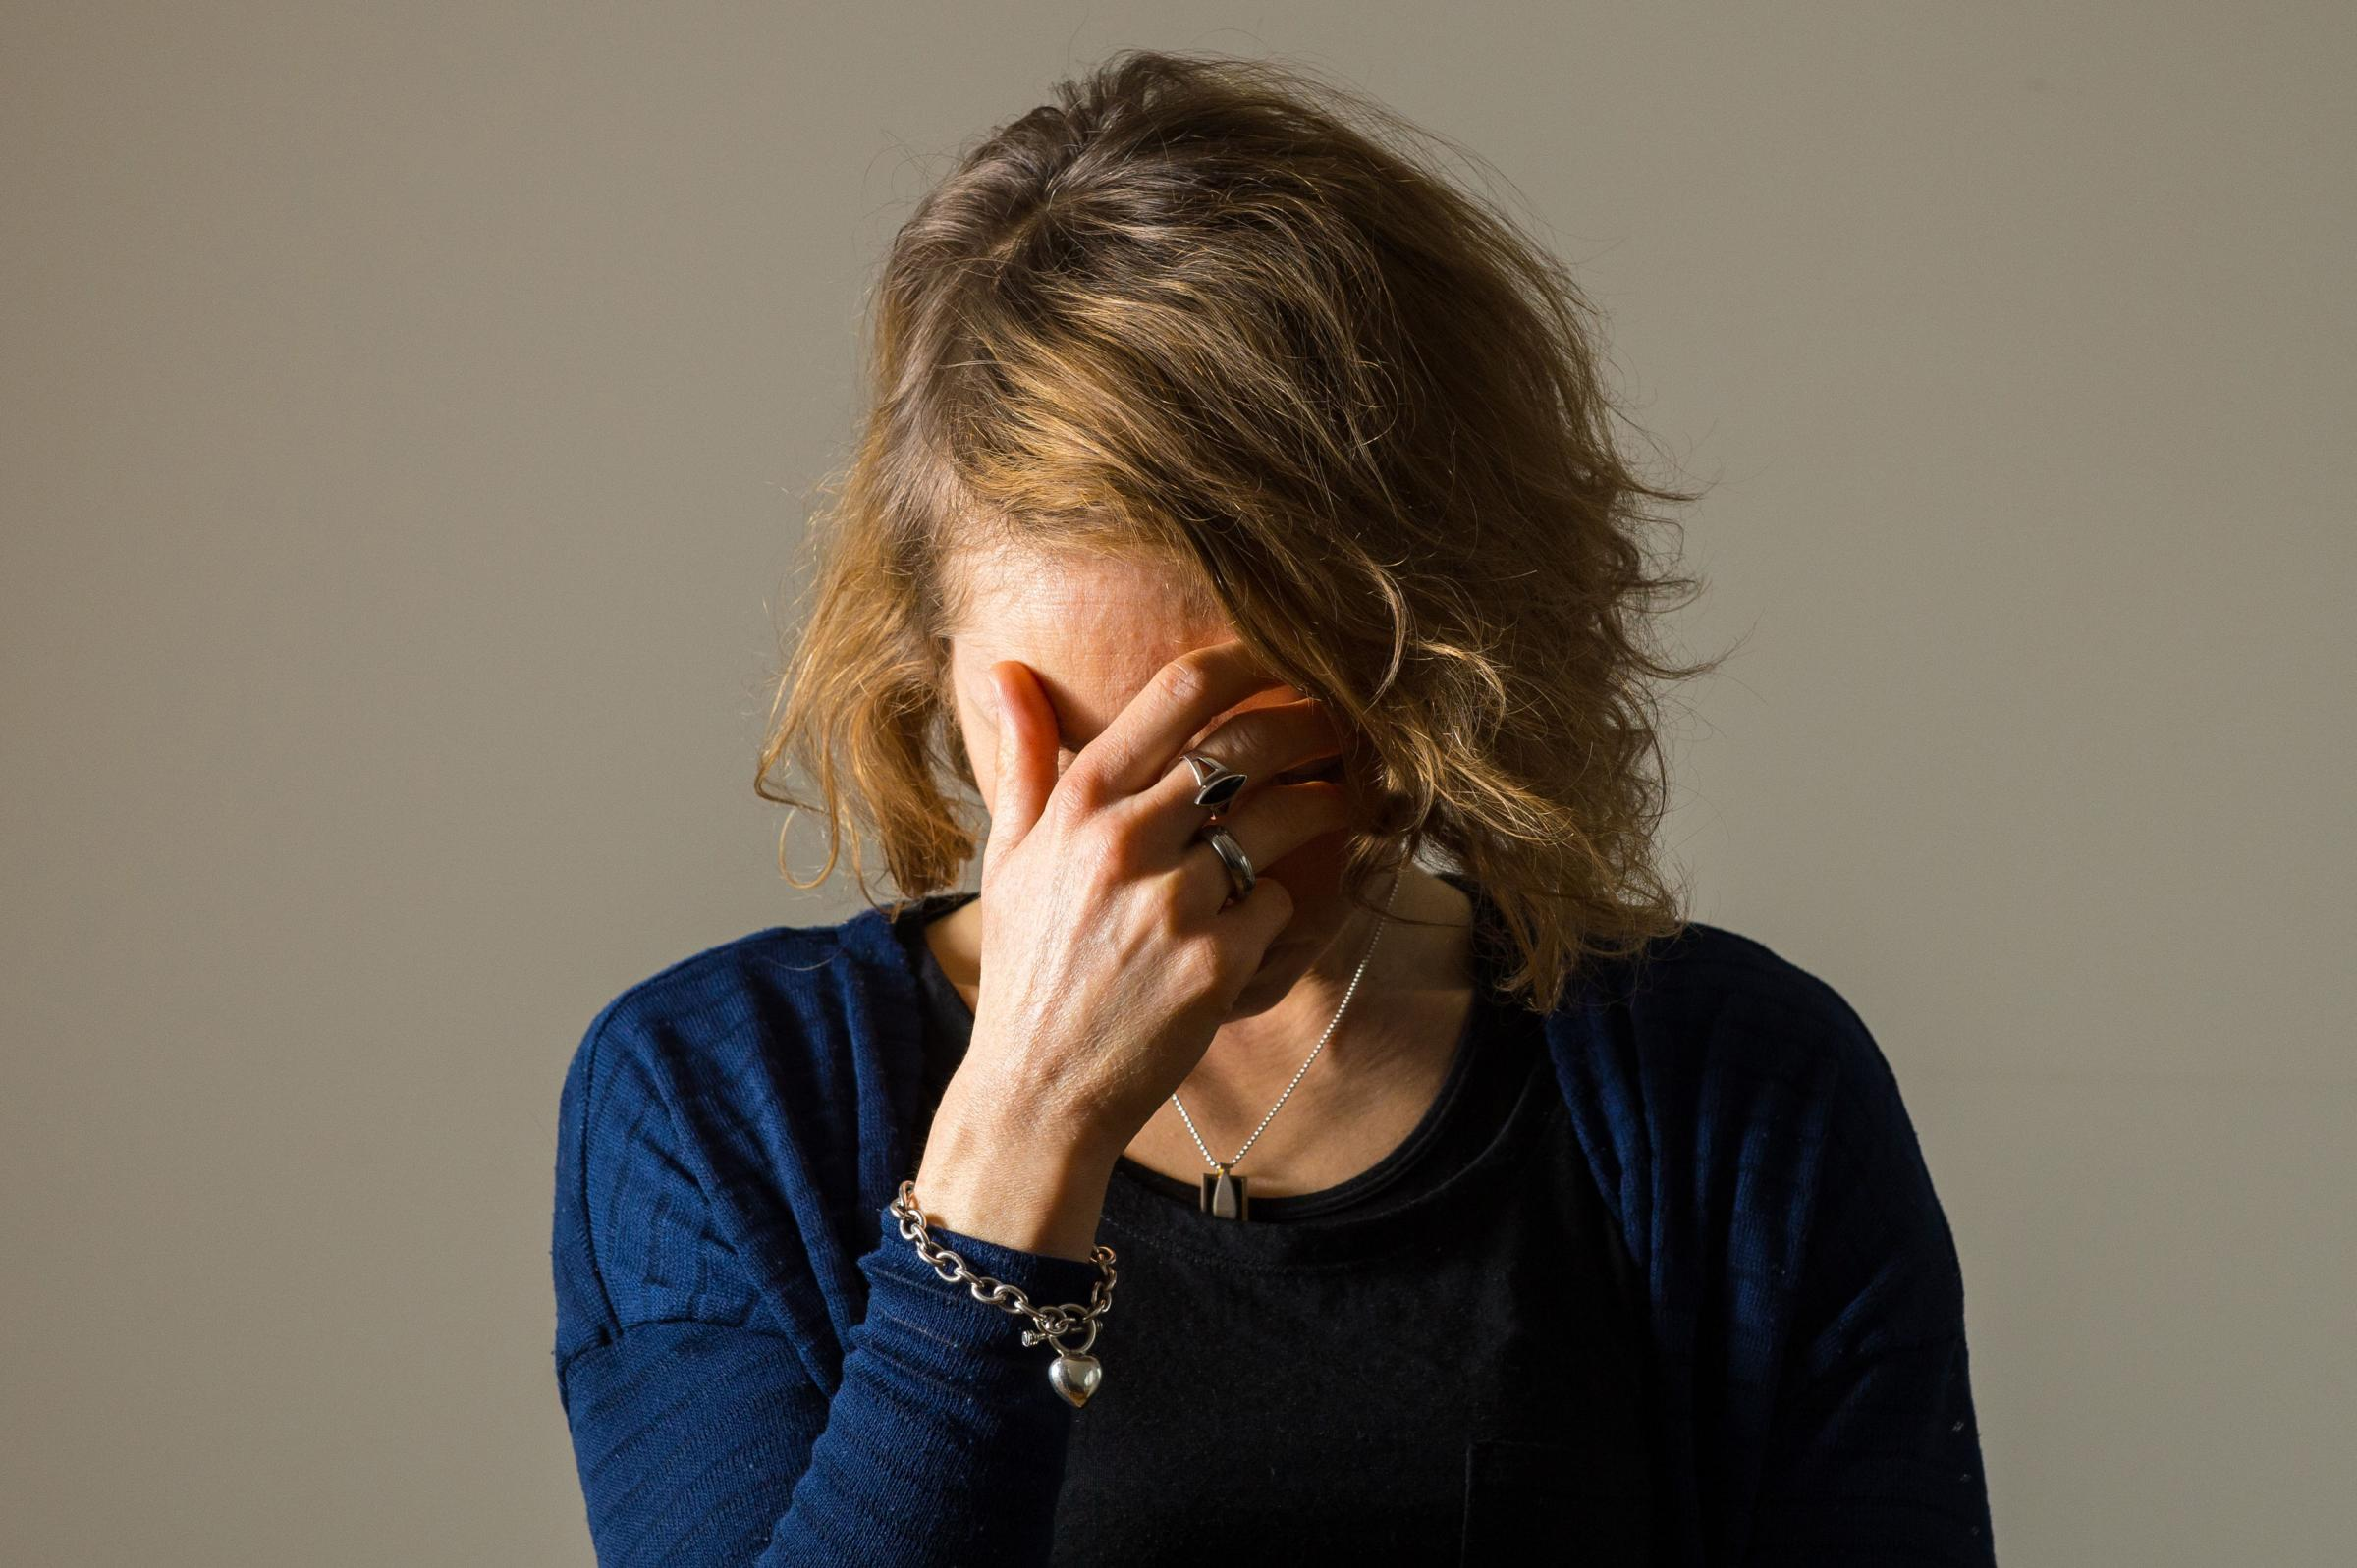 suicide among young people